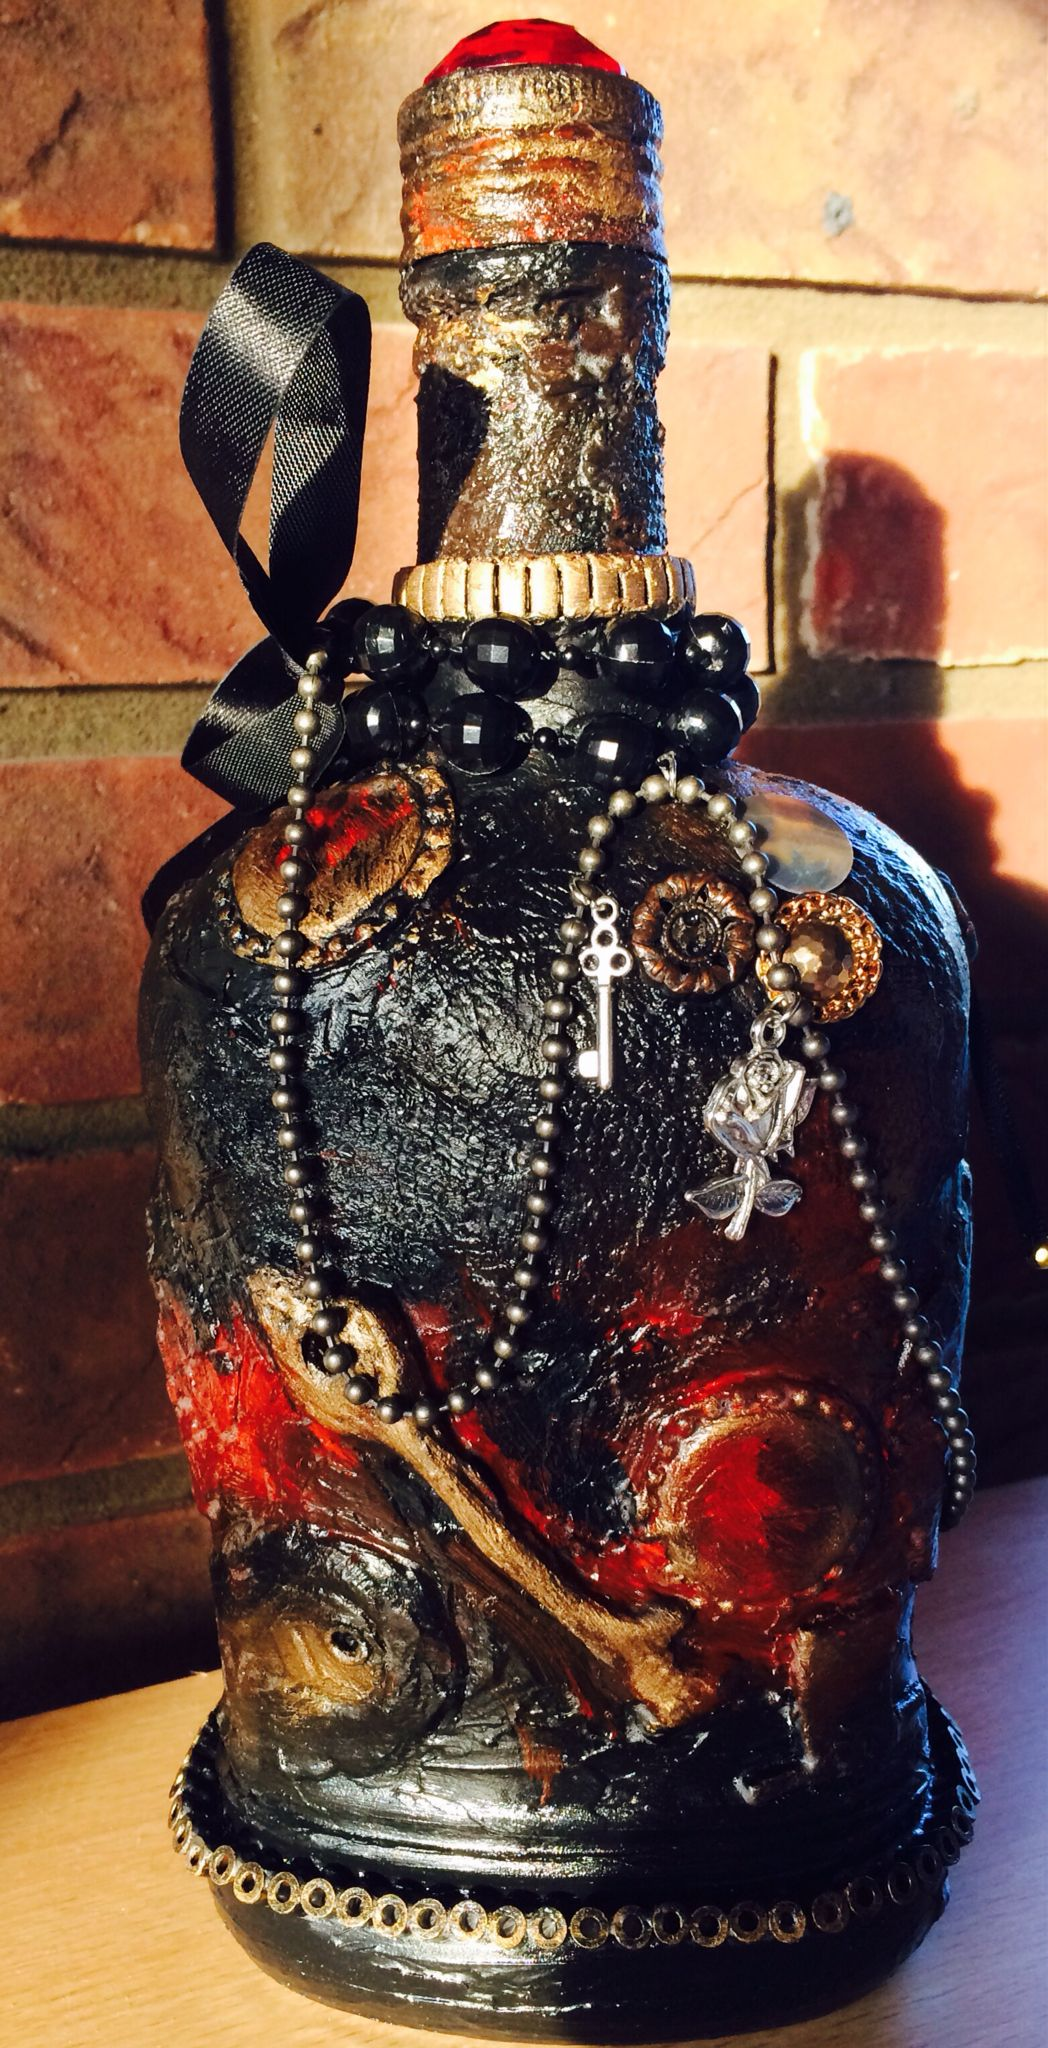 Gothic / Alternative Items For Sale Or Swap. Public Group ...